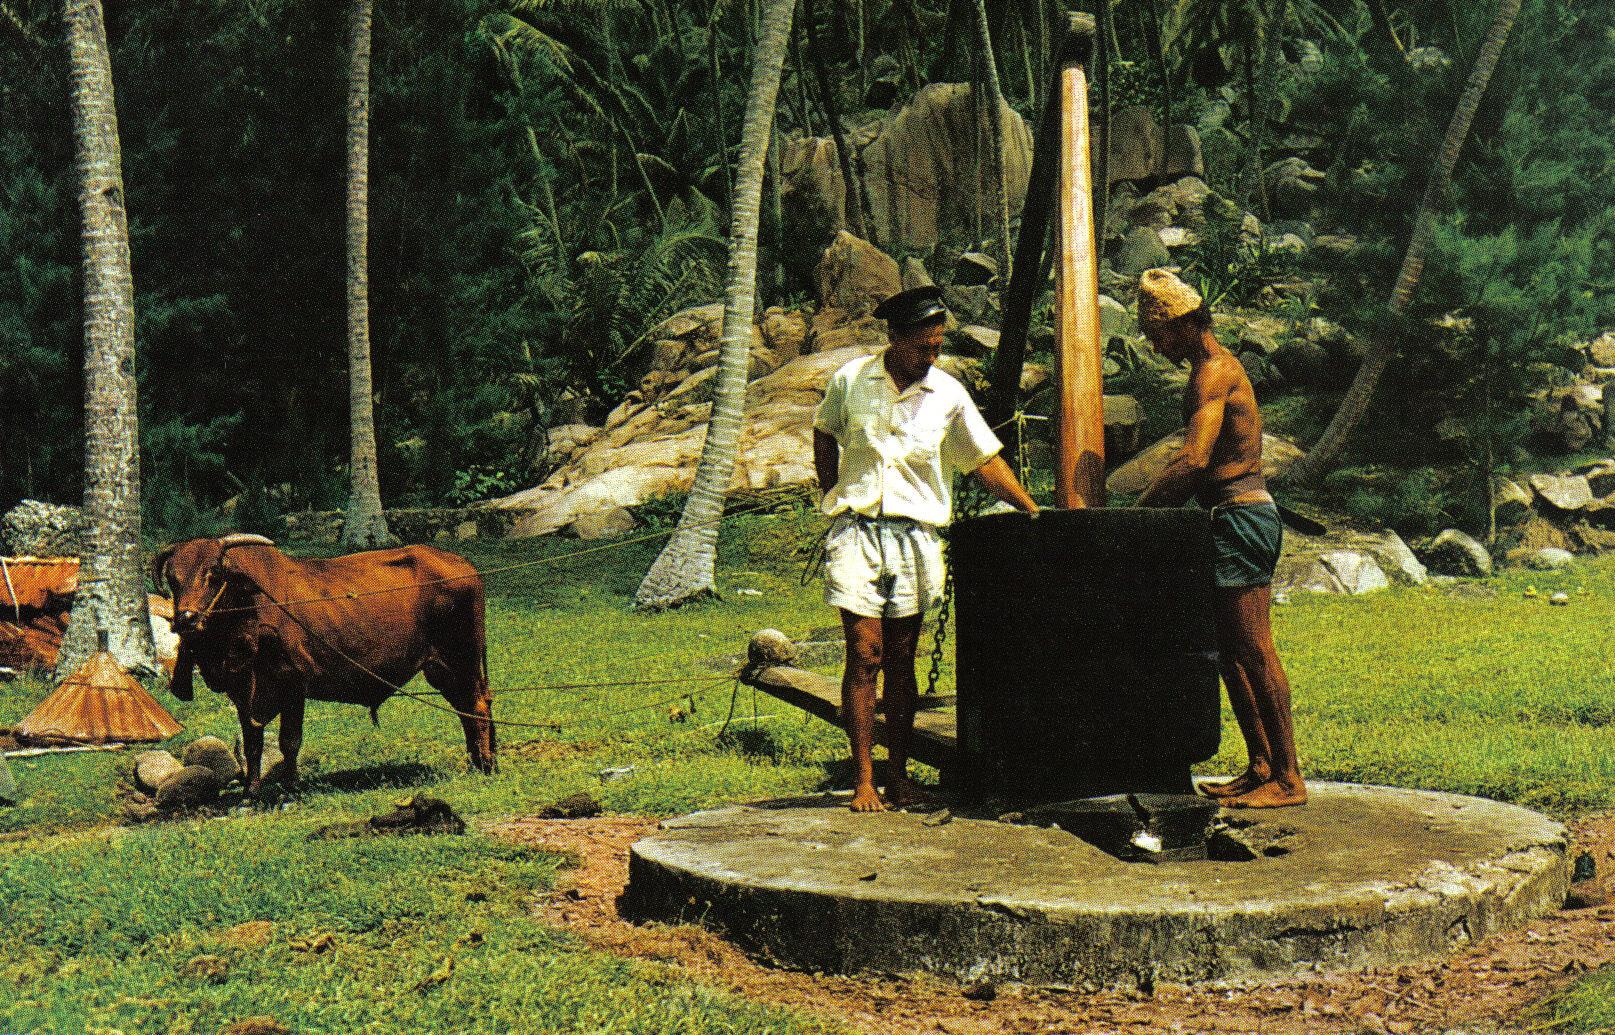 https://upload.wikimedia.org/wikipedia/commons/a/a0/Coconut_oil_making_Seychelles.jpg